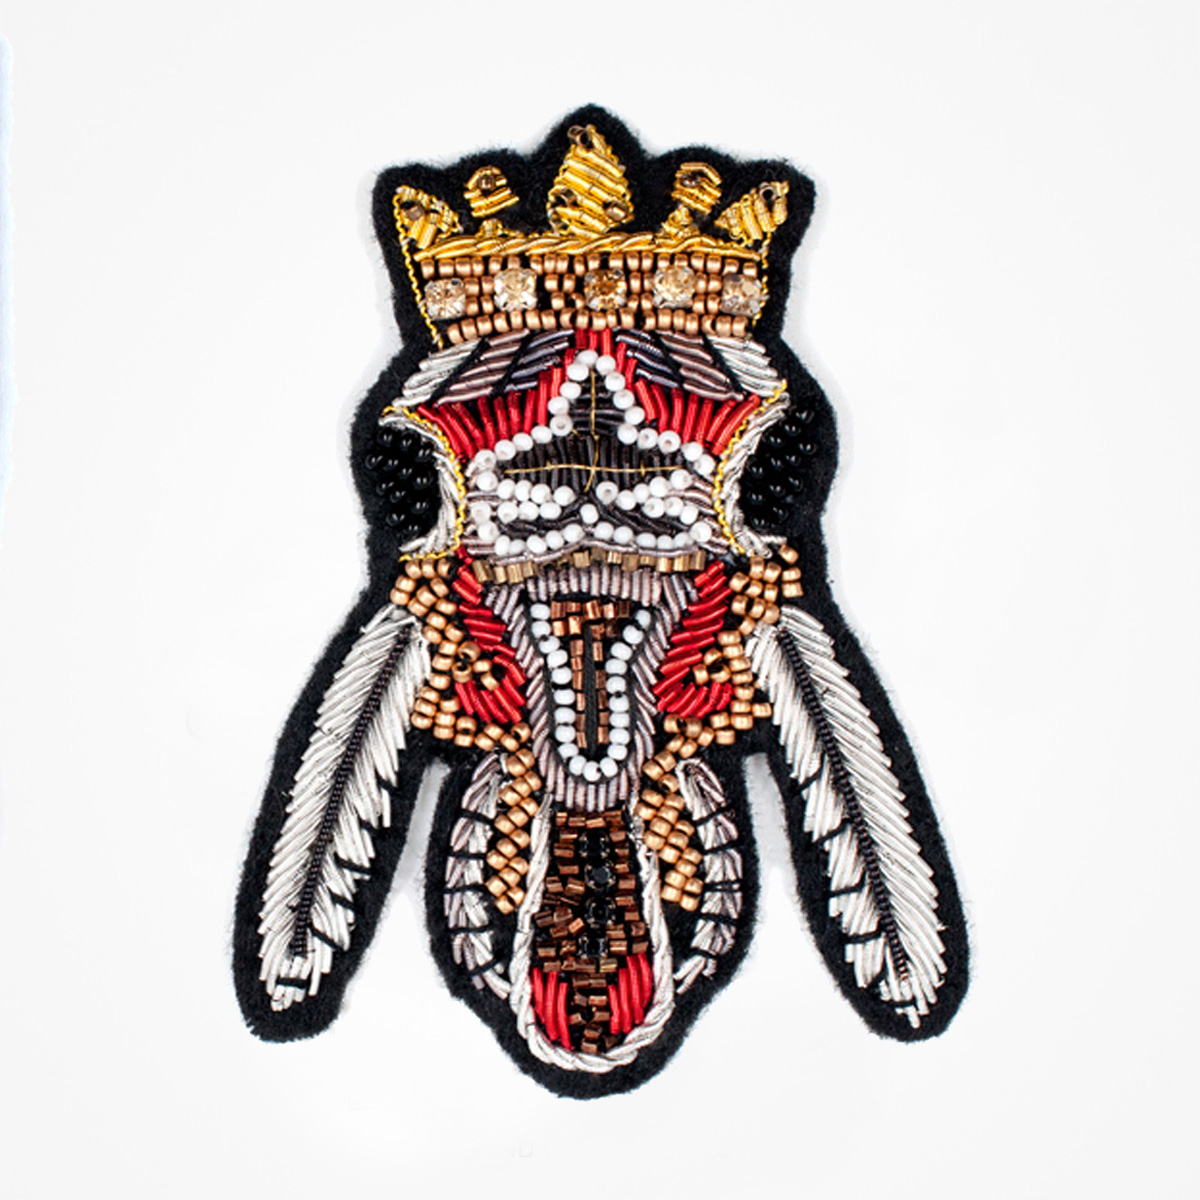 Crown Red Fly Fashion bullion blazer badges - Fashionable 3D embroidered look Made by skilled artisans Bullion wire and silk thread hand Stitched on Black color Felt Available in gold and silver colors Size = 78 mm height 55 mm width sew-on backing: Perfect for caps, sports jacket, leather jackets, blazer coat, Blazer Pocket, shirts uniforms, Accessories and many More Pin backing: easy to removable 5